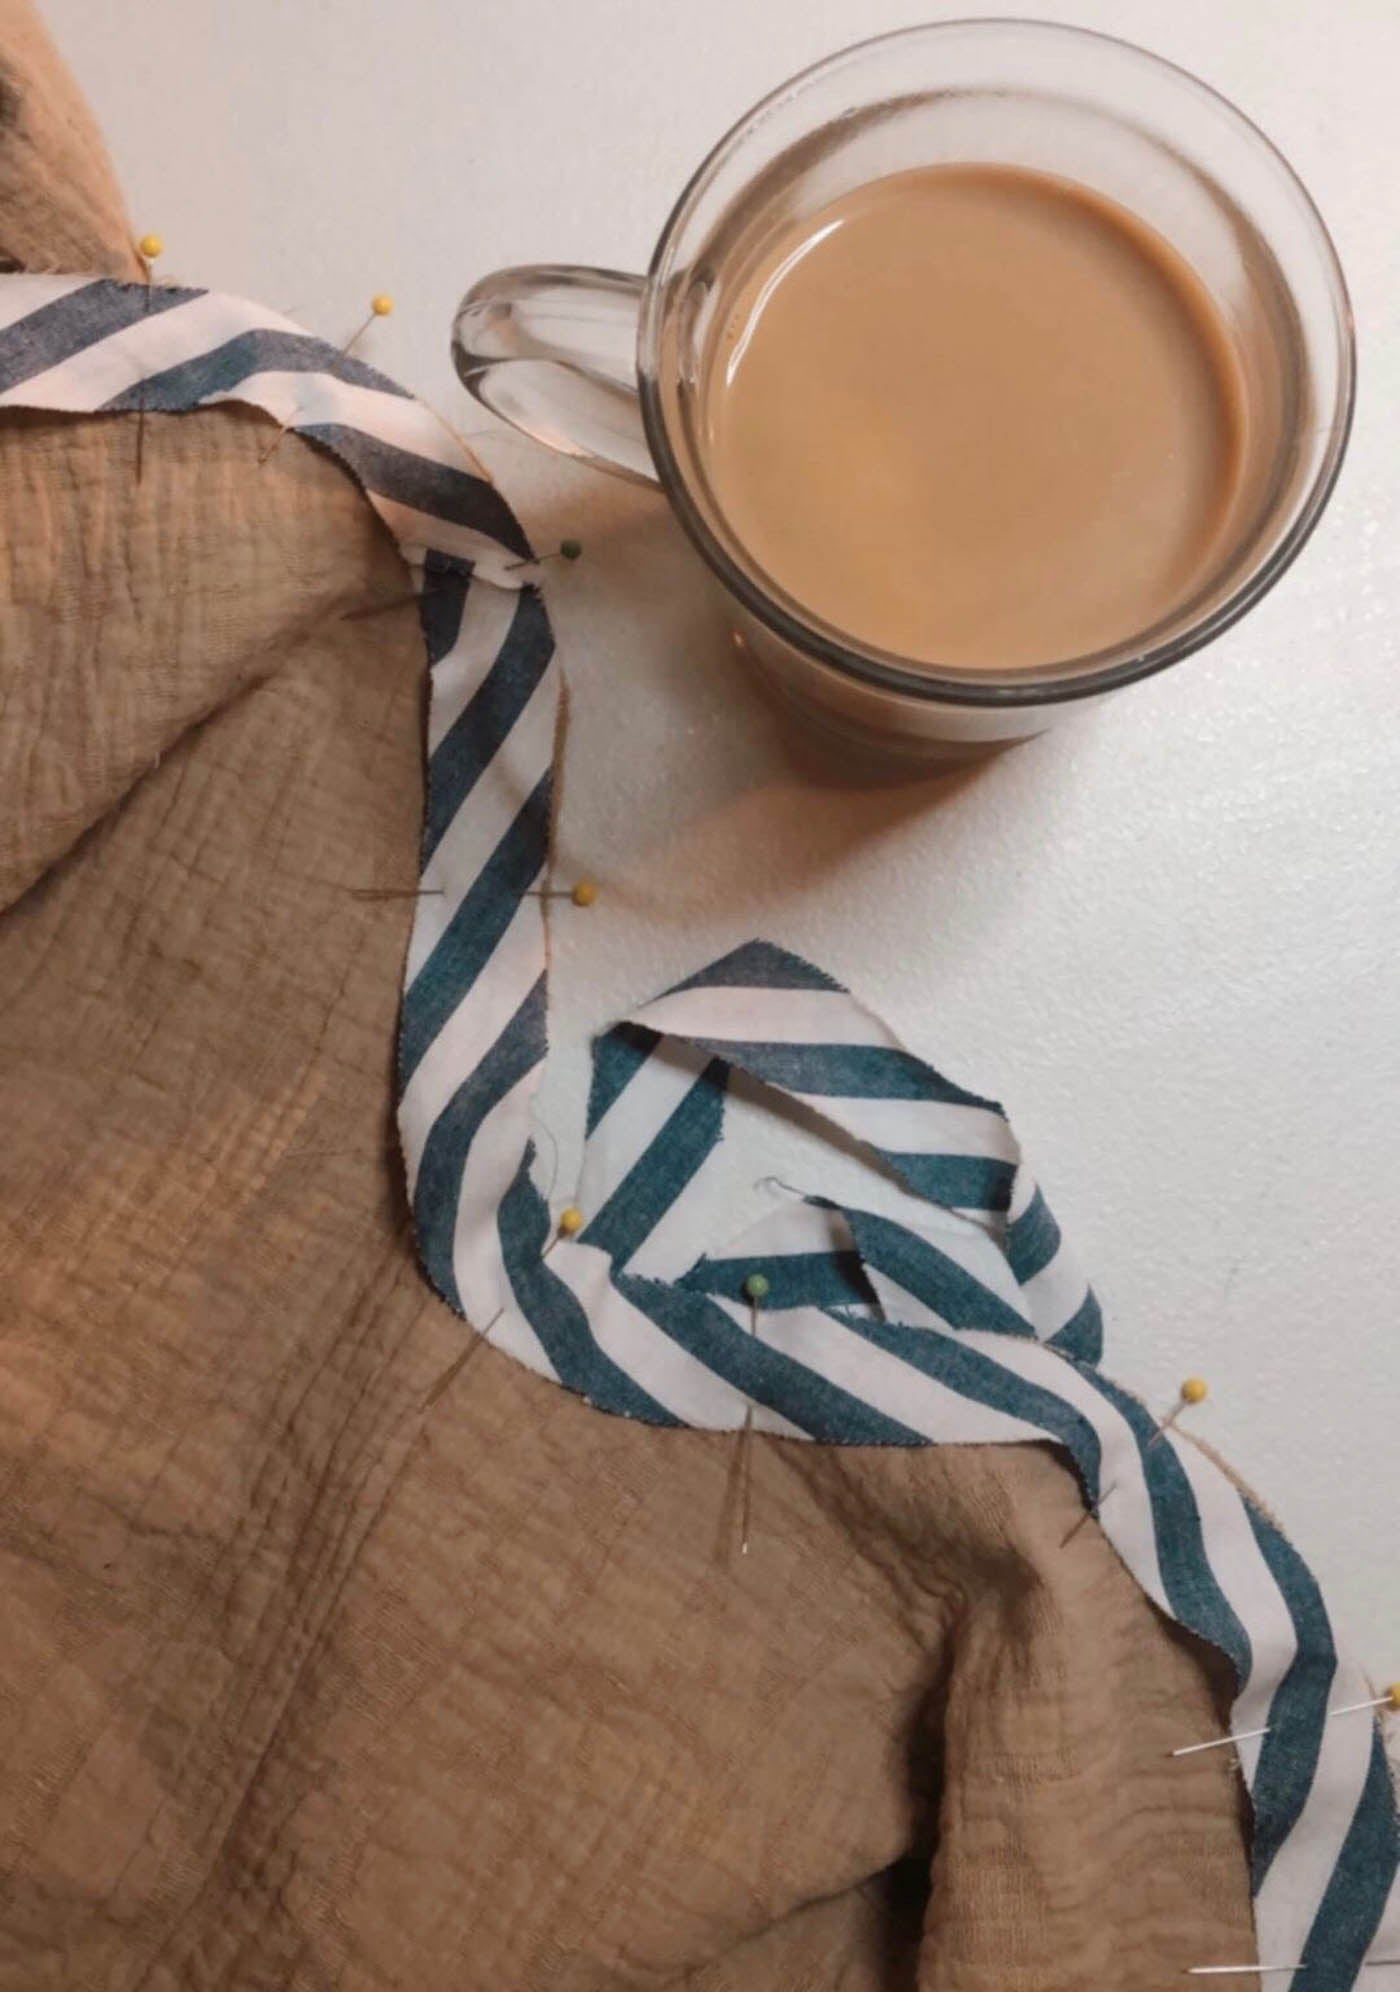 Lay flat image of sewing project and a cup of coffee